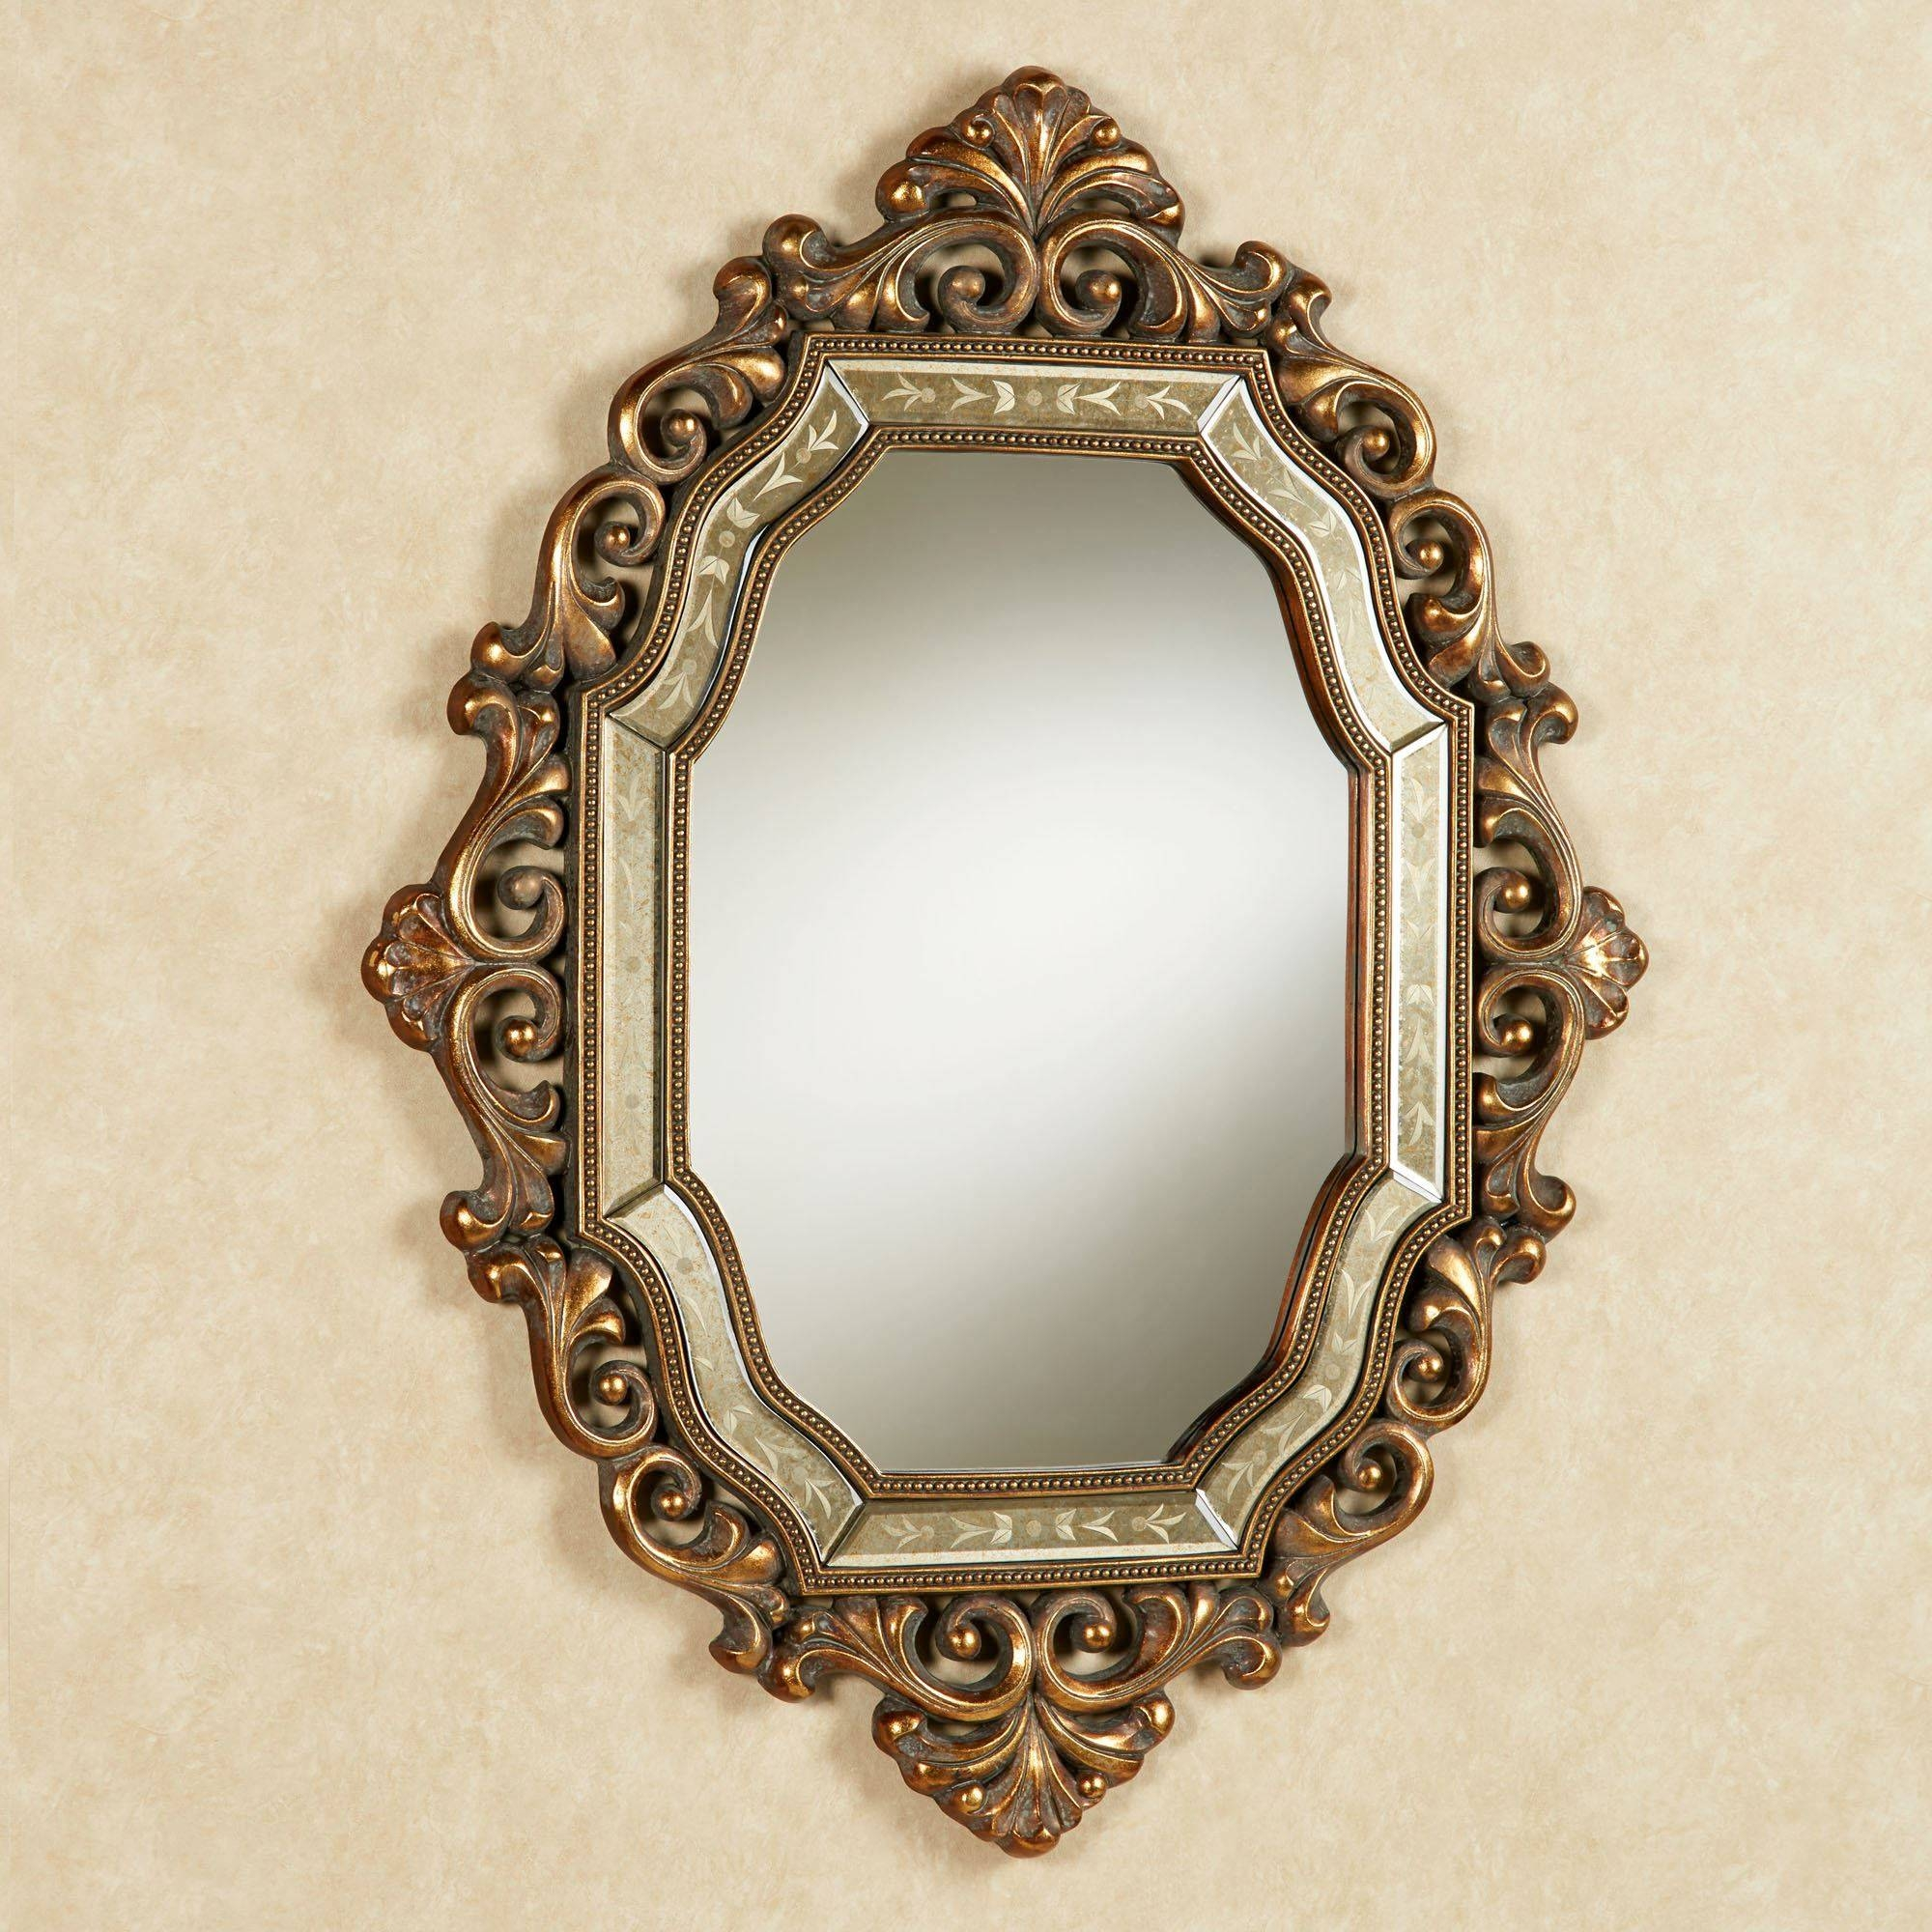 Verena Old World Wall Mirror for Gold Antique Mirrors (Image 25 of 25)